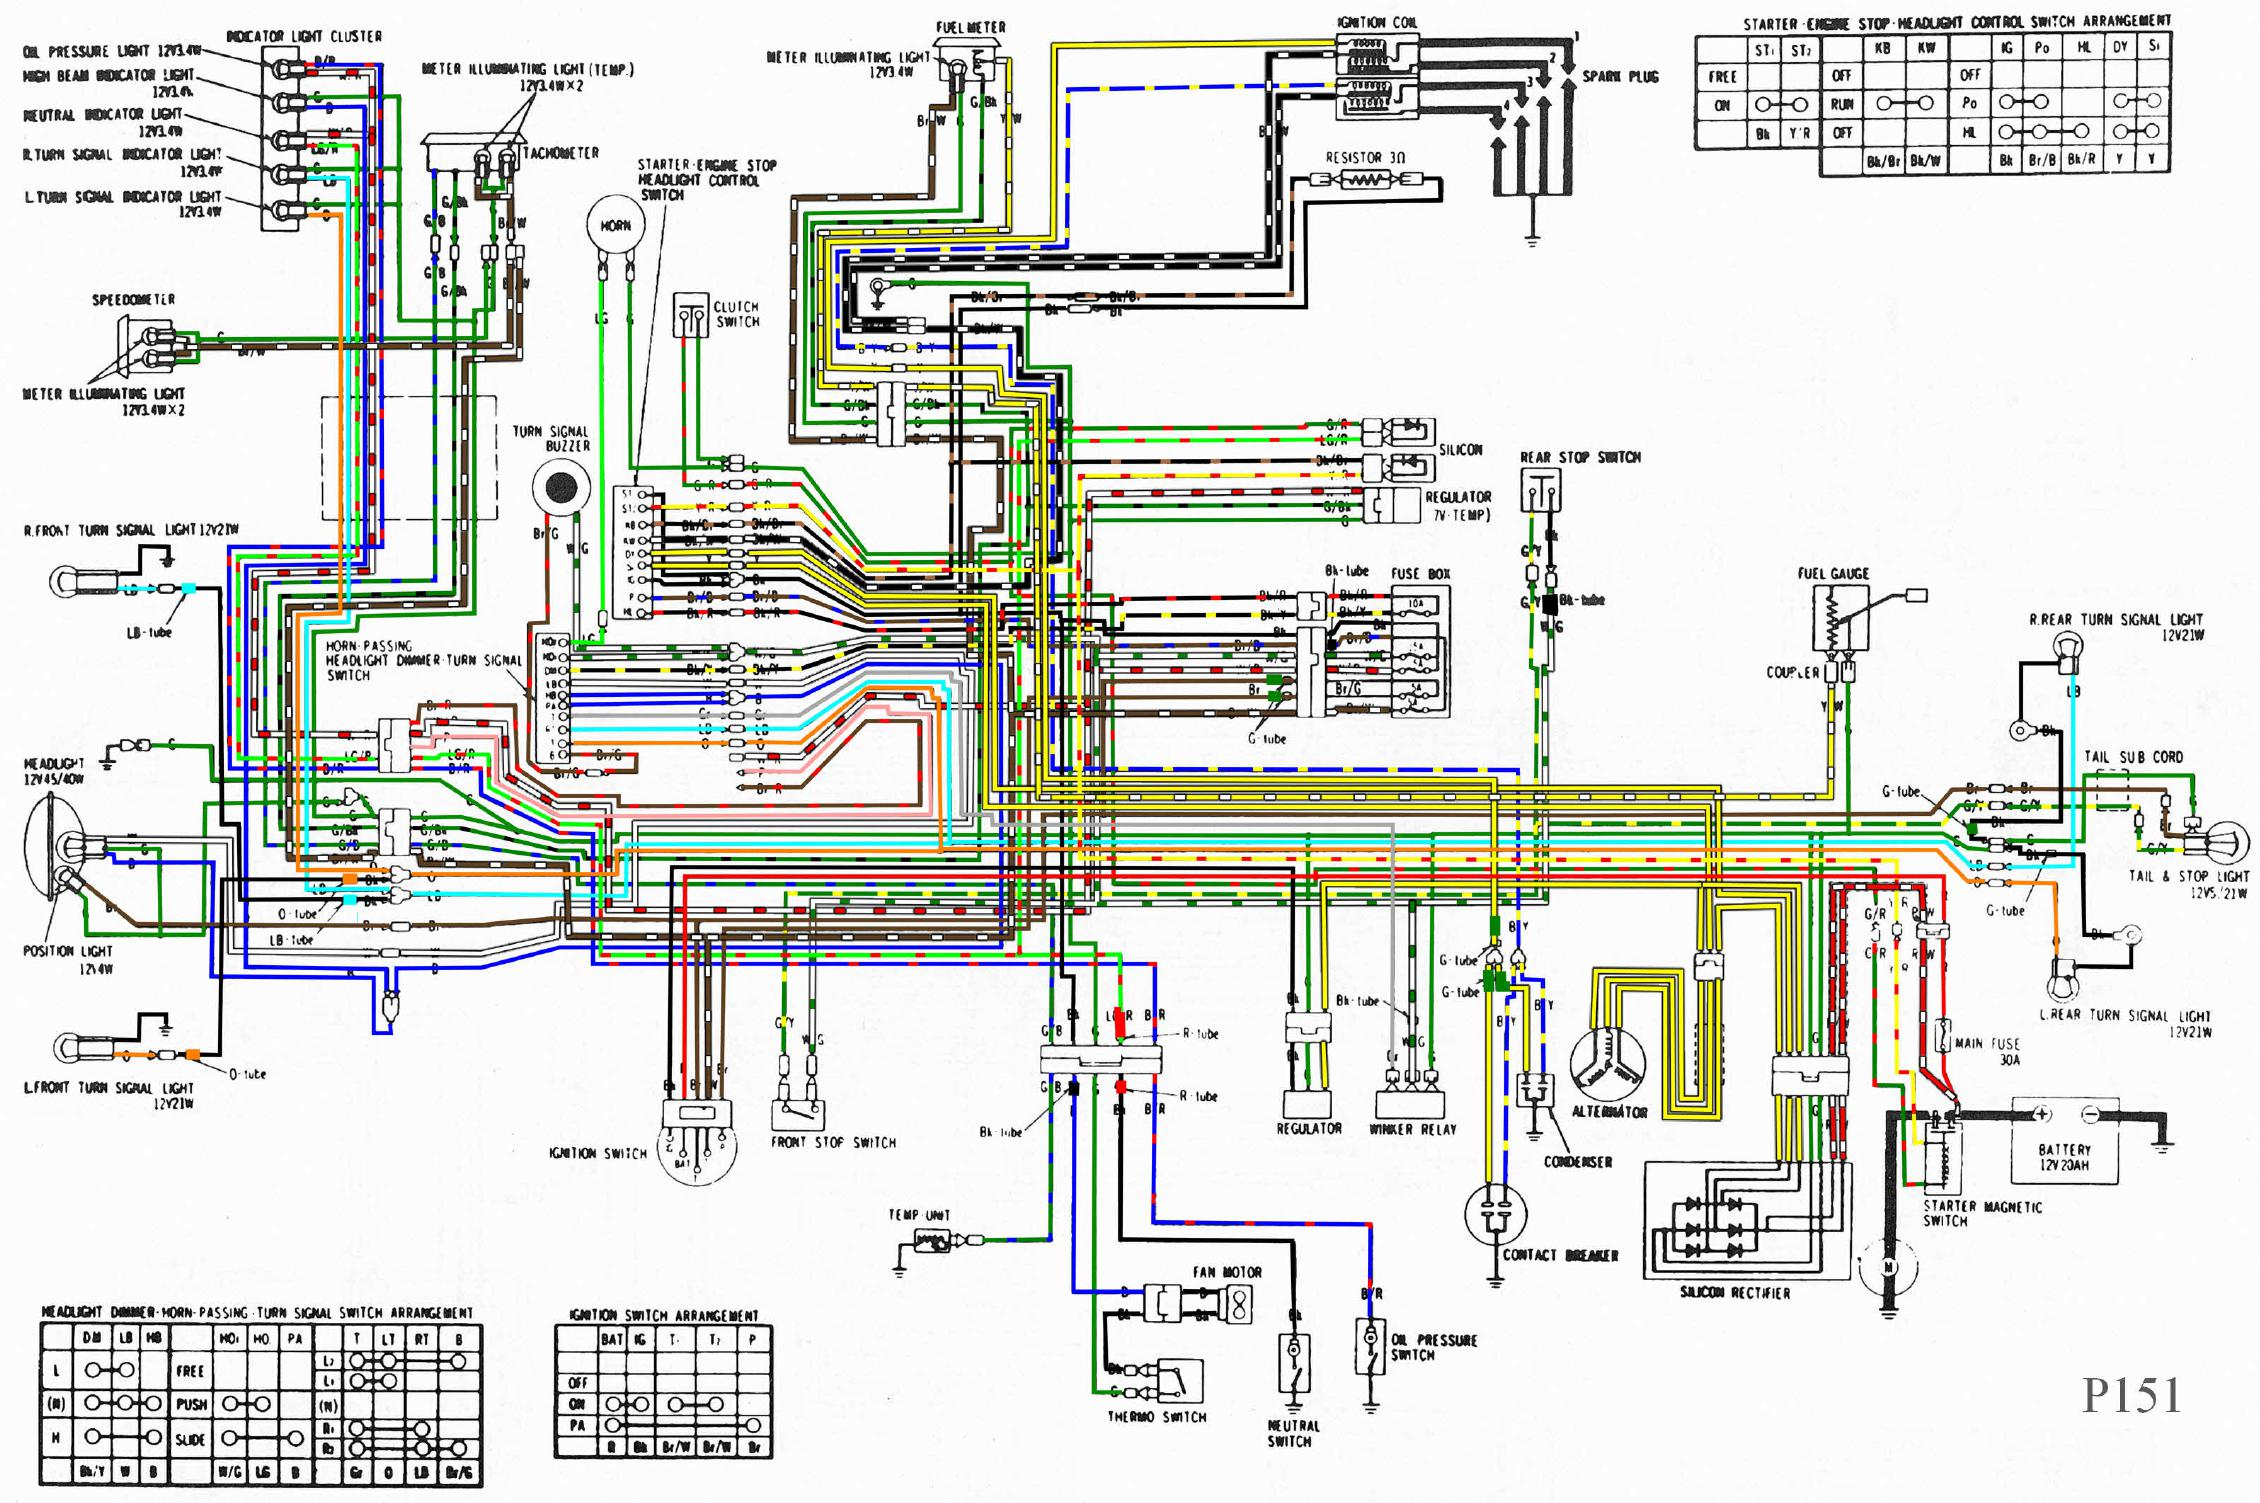 [SCHEMATICS_4JK]  0E0A Wiring Diagram For 2006 Gl1800 | Wiring Library | 2015 Gl1800 Wiring Diagram |  | Wiring Library